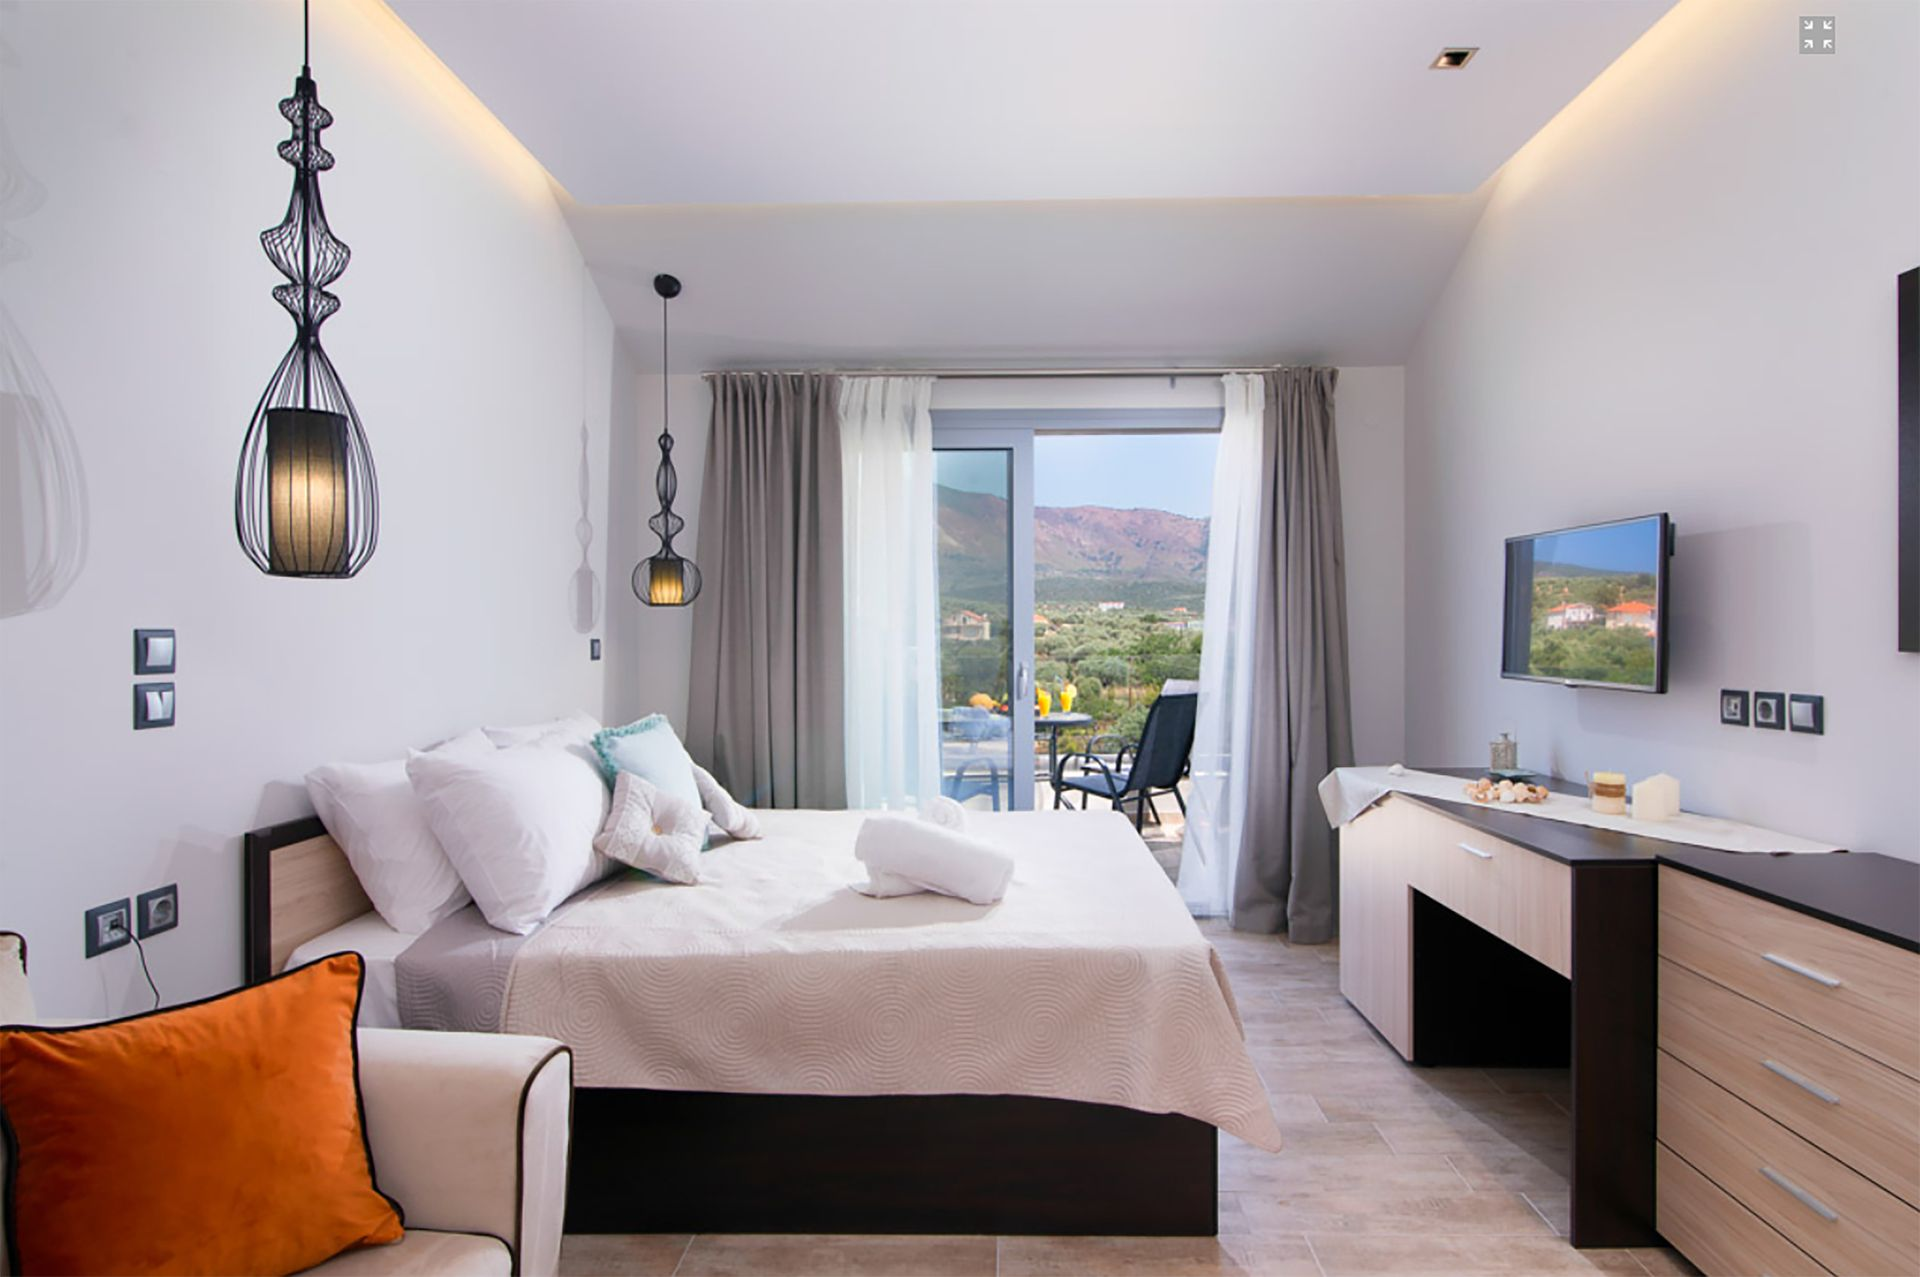 The Dome Luxury Hotel